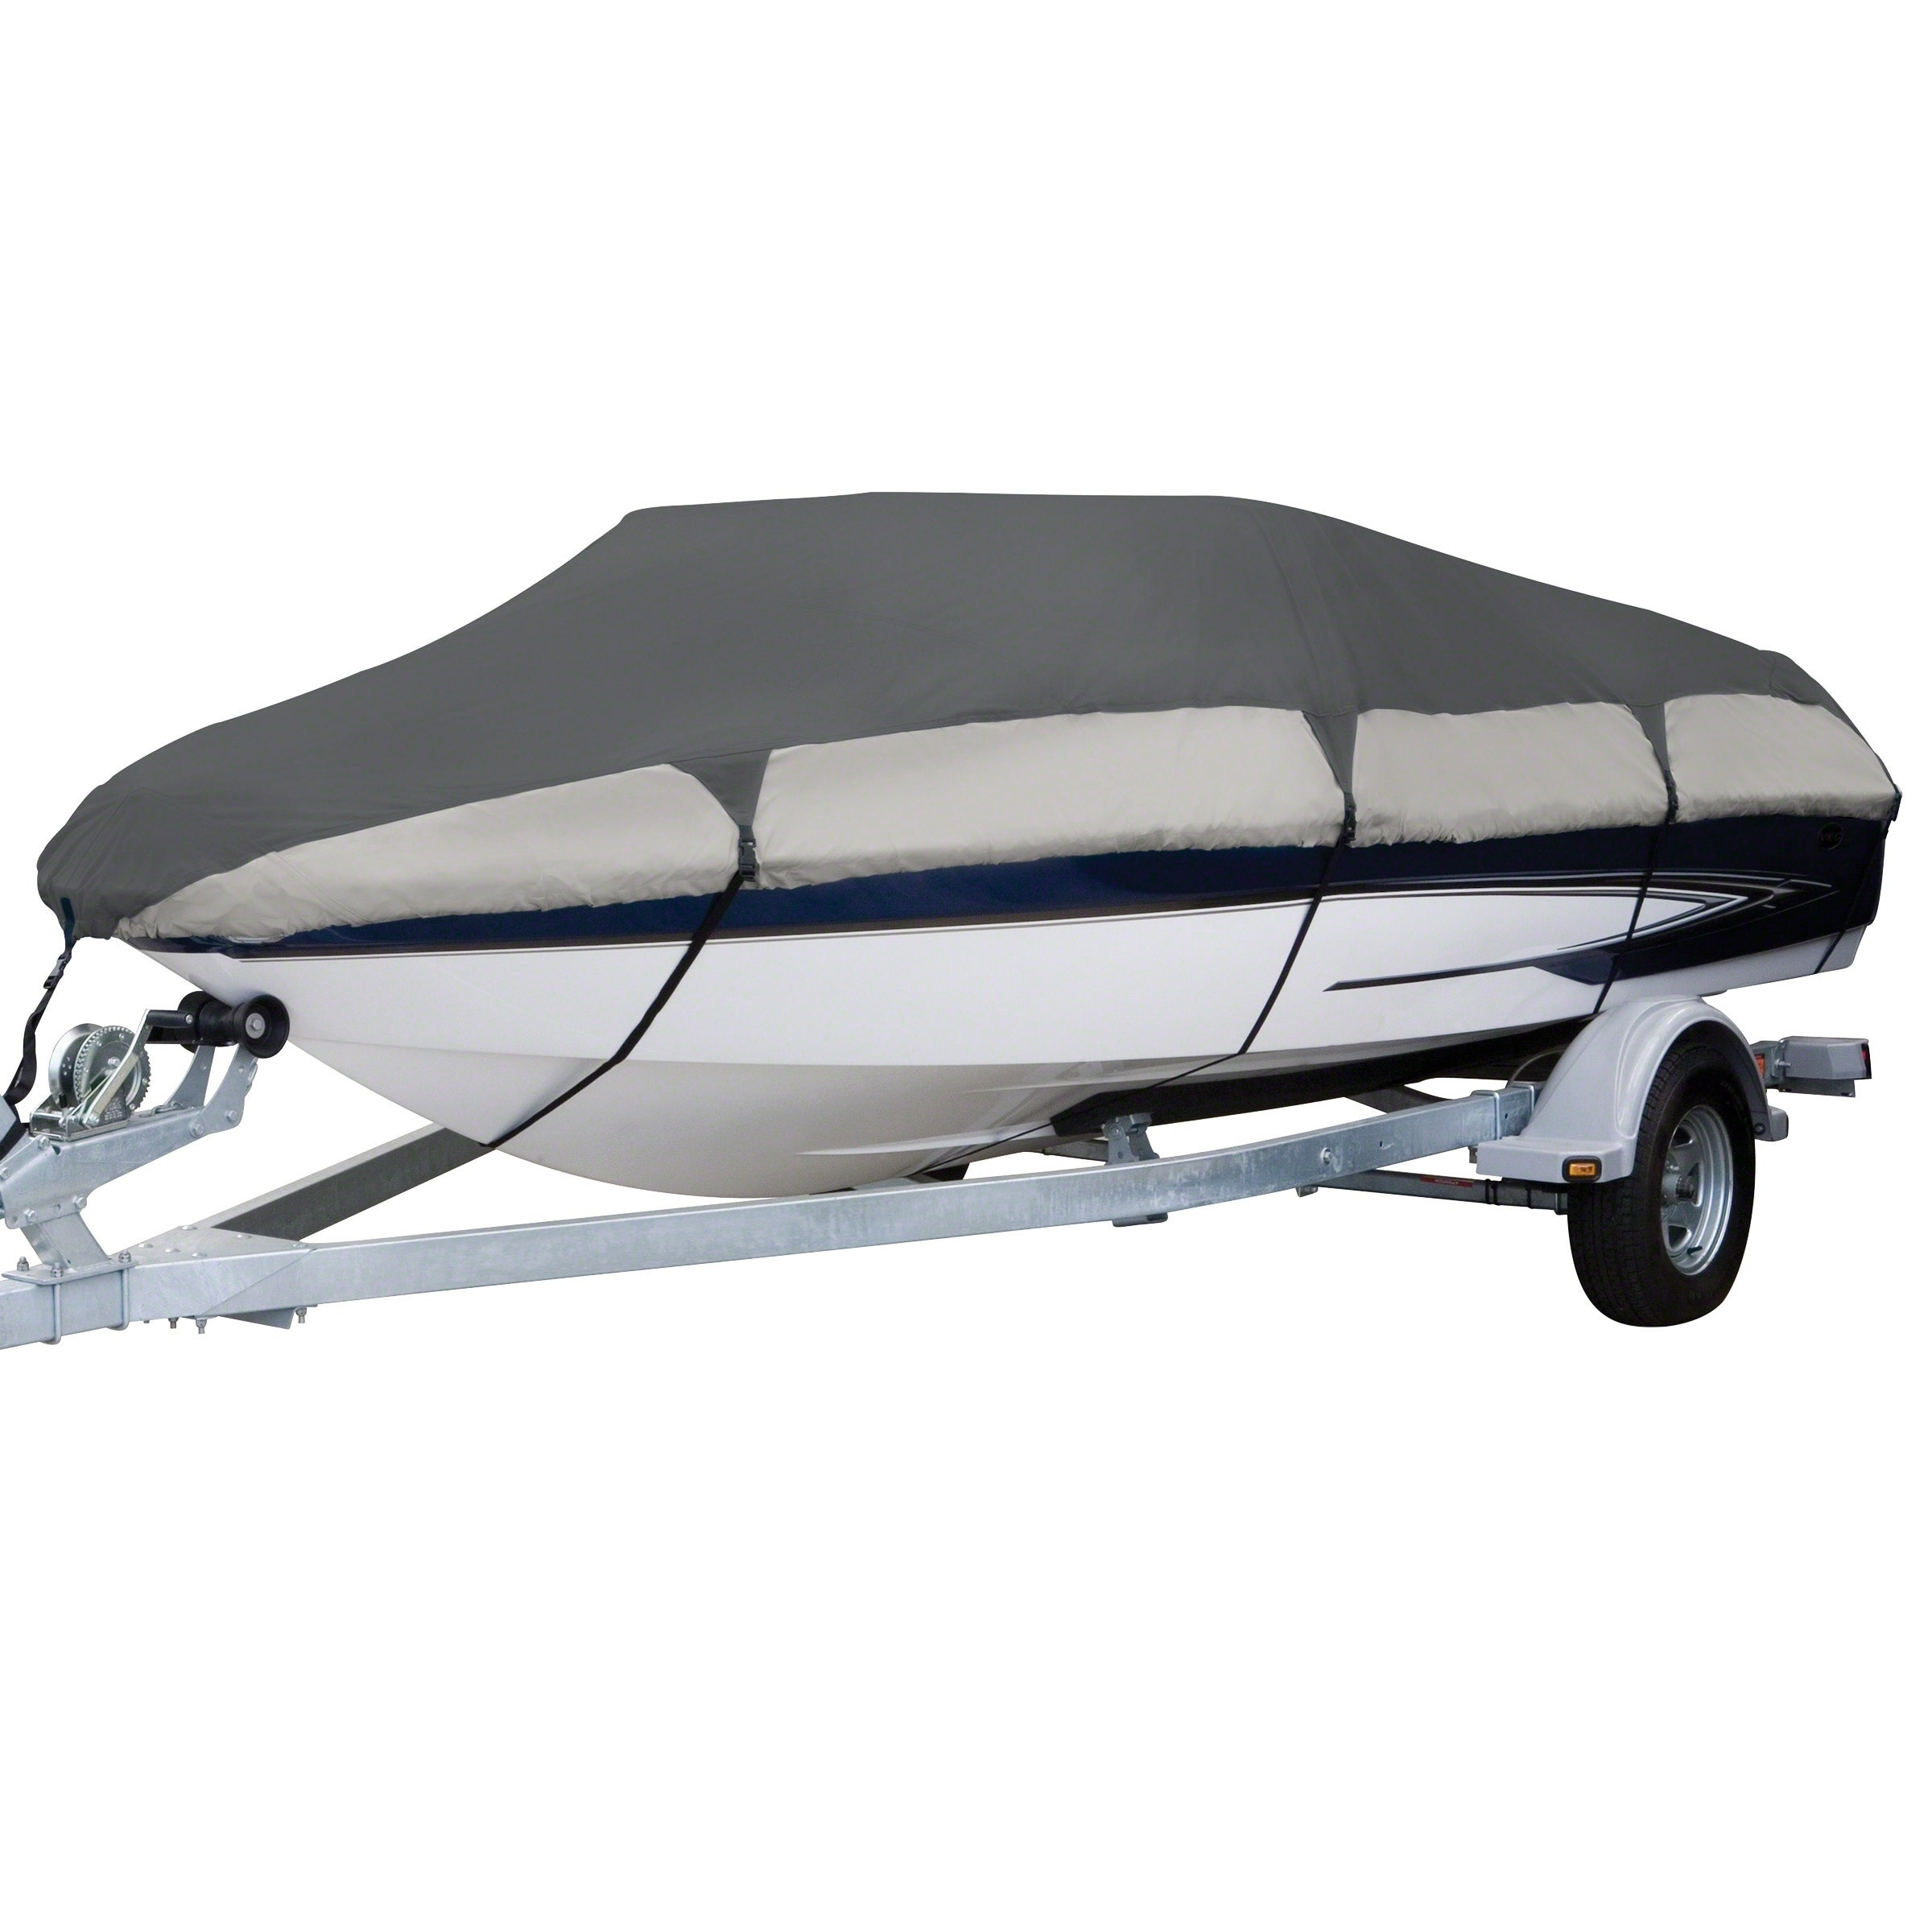 "Classic Accessories StormPro T-Top Roof Boat Cover  22/'-24/' Long  Up to 116/"" W"